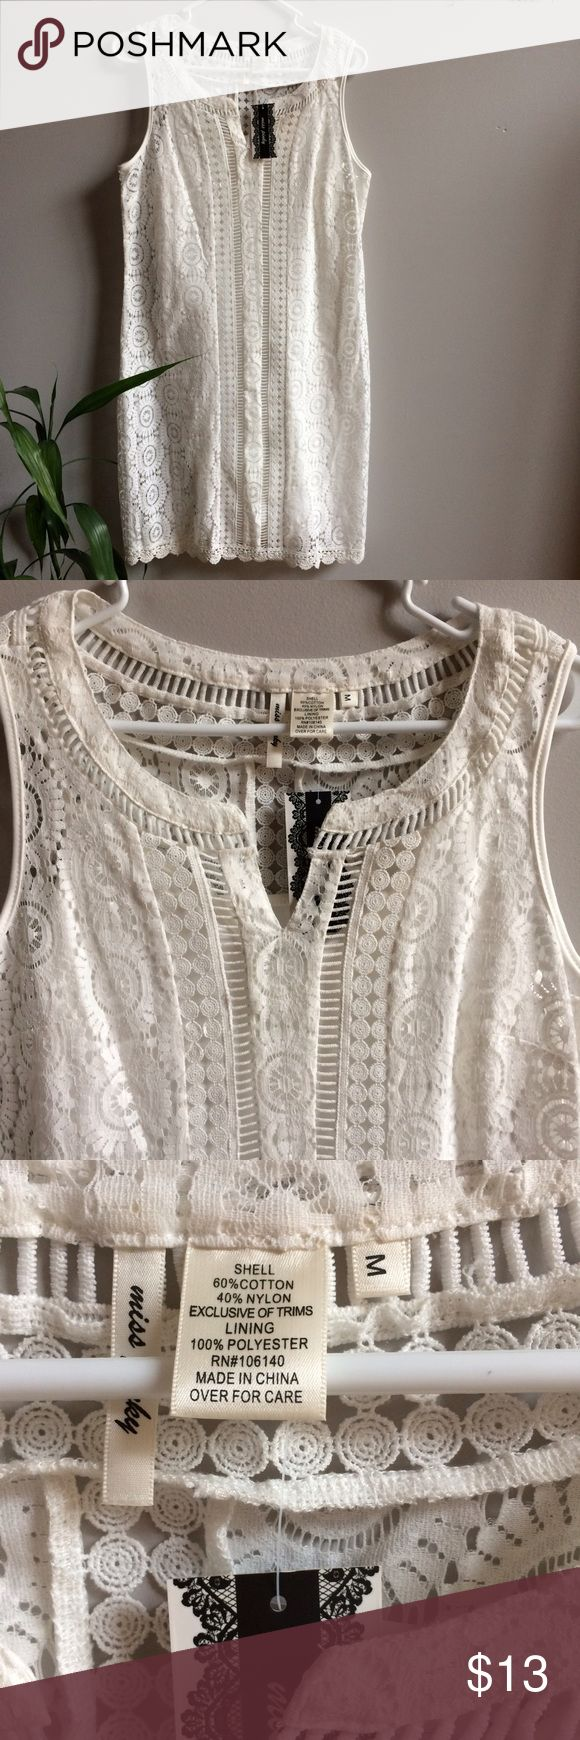 "🎁NWT White Lace Lined Dress Lining is a separate piece from the main lace part of the dress. Women's sizing. Retail $49.99. Measures 38"" shoulder to hem. Will not be priced lower. No offers please. Dresses"